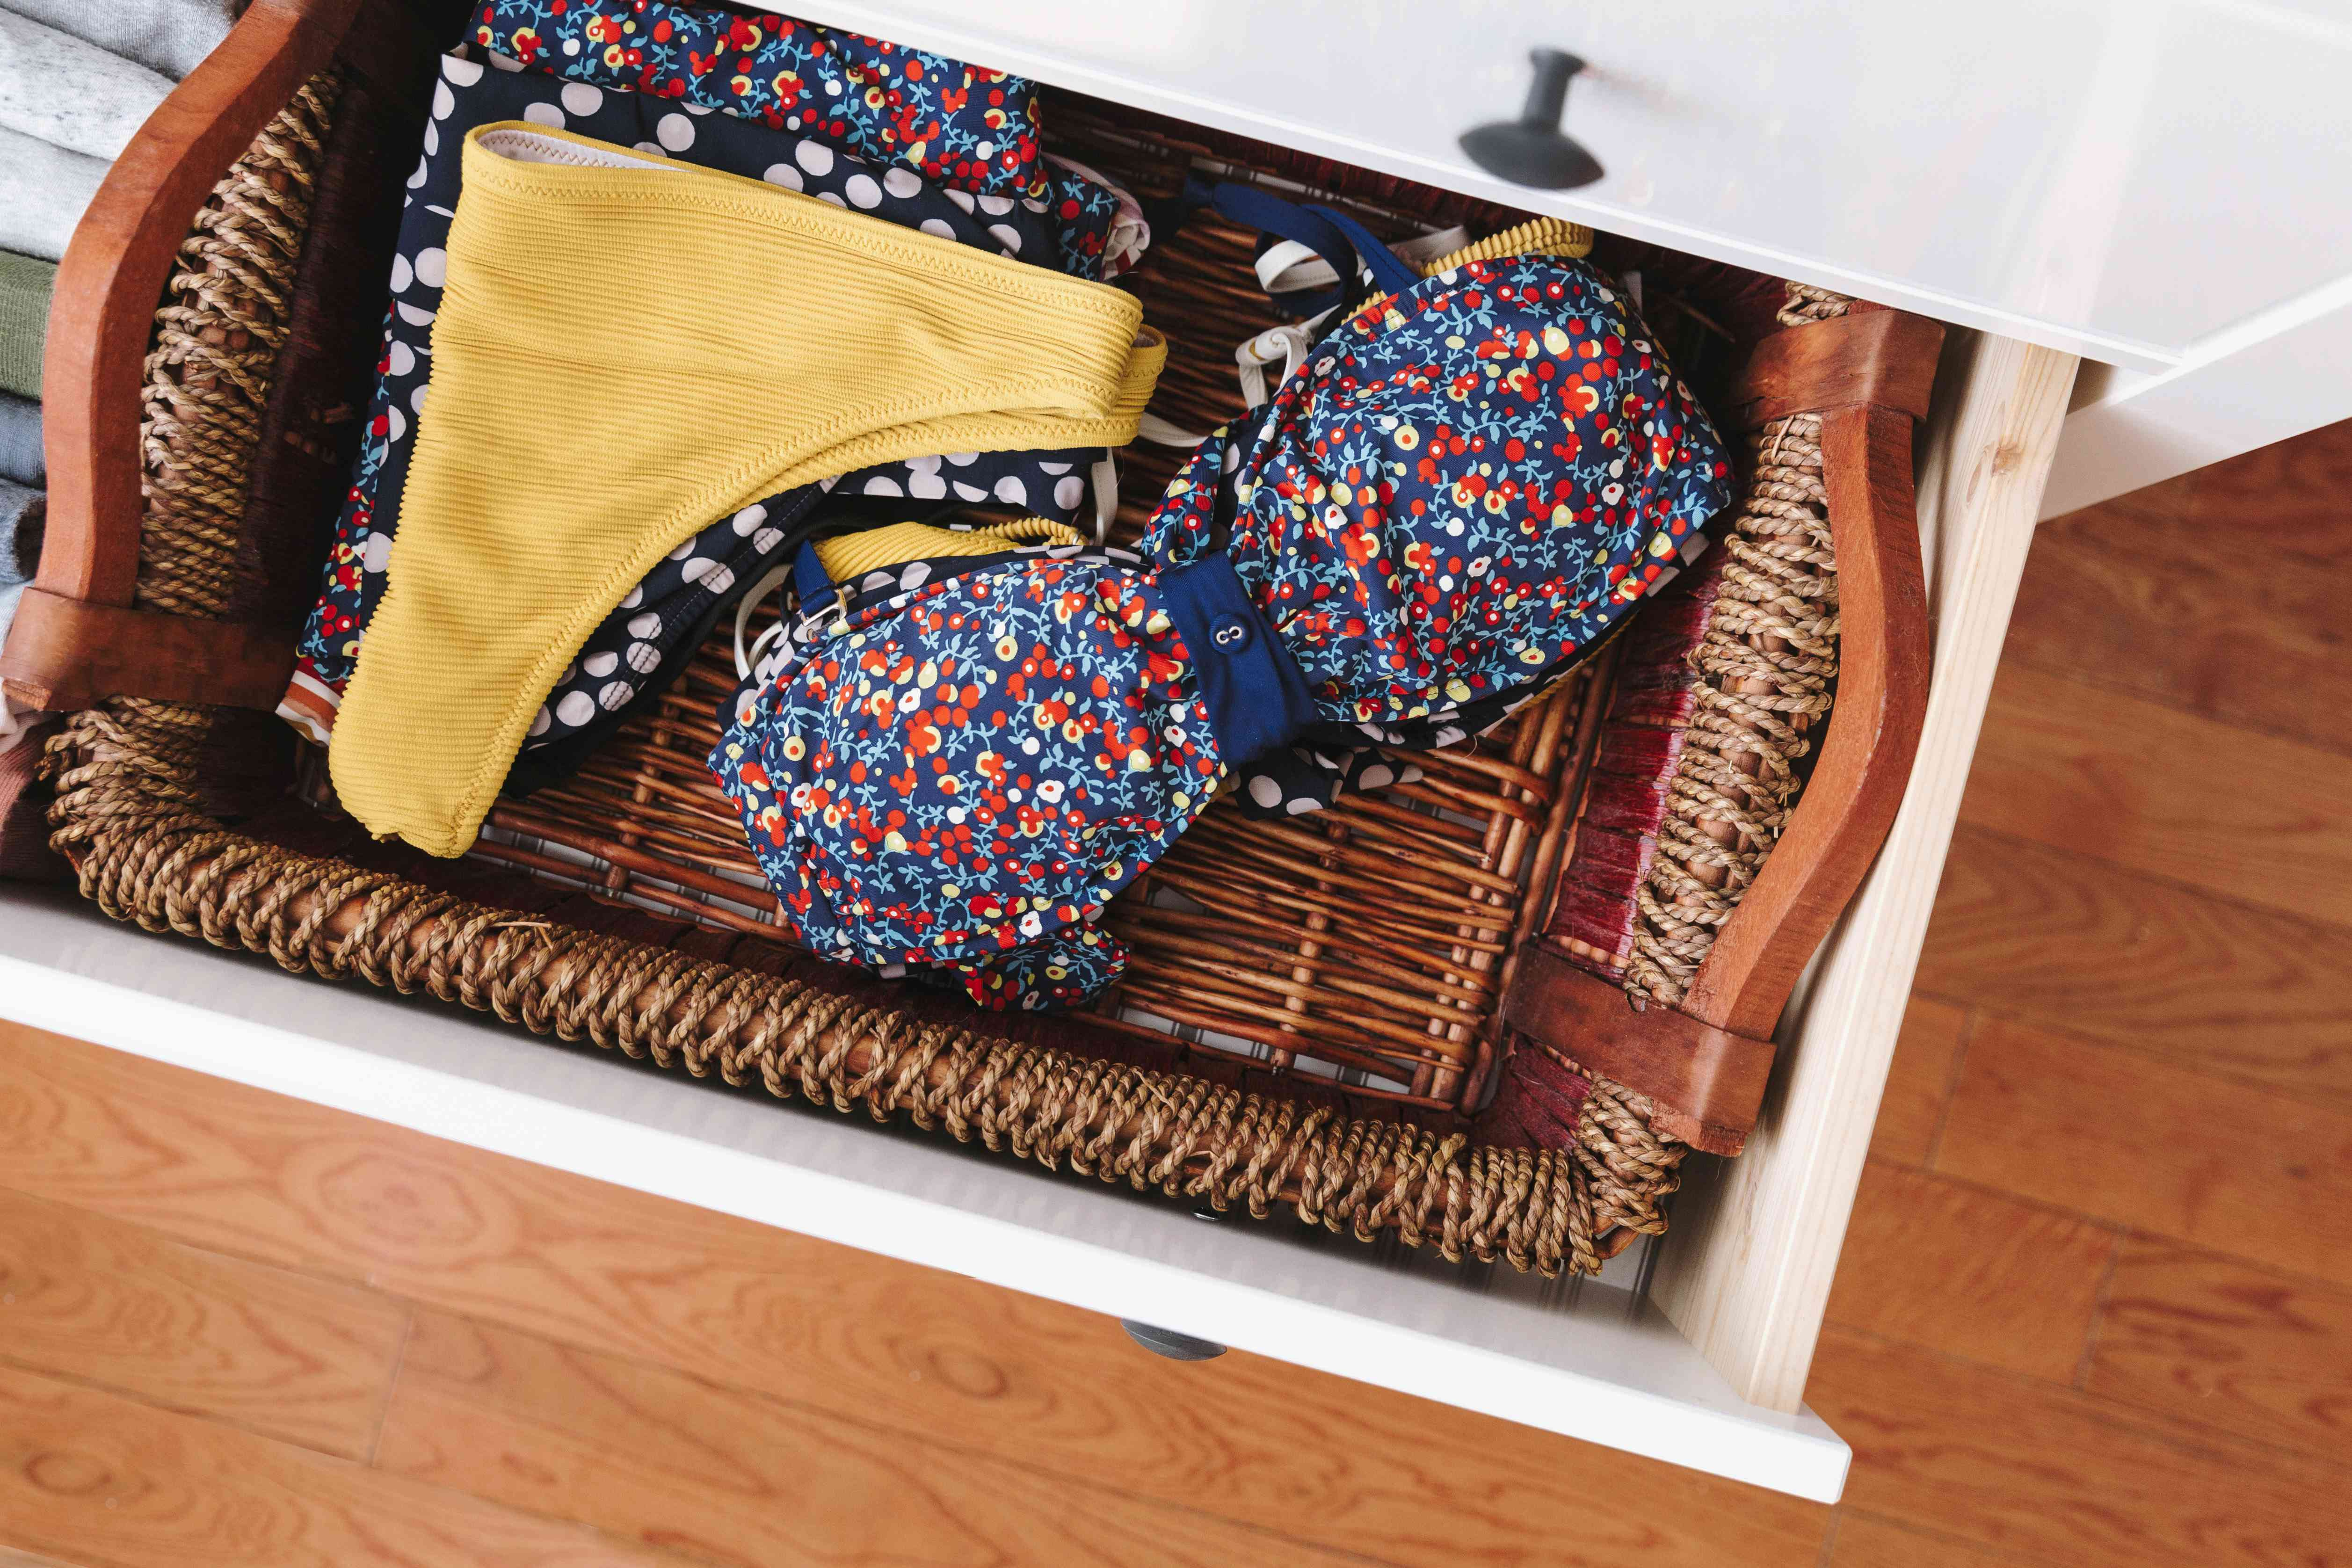 storing bathing suits in a basket within a drawer